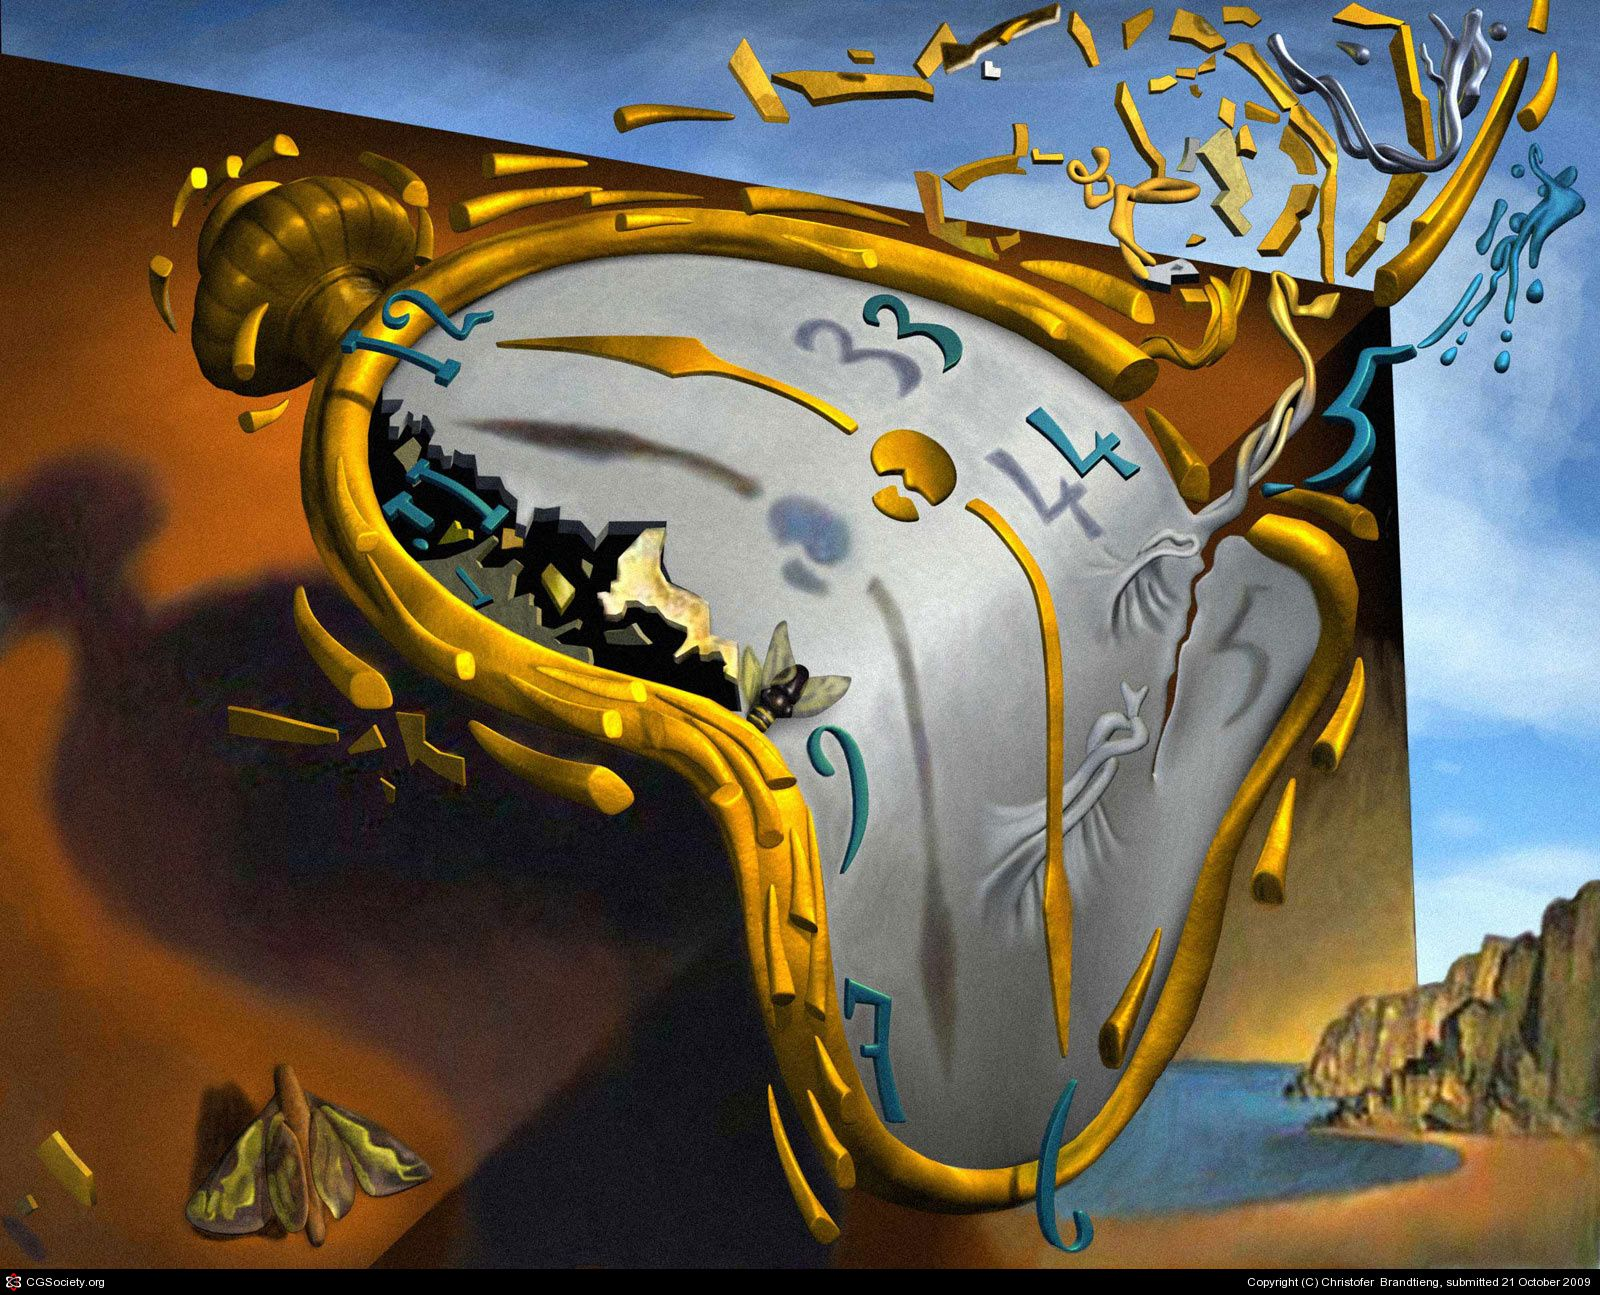 Salvador Dali - Time Exploding or Time Passes | Dali paintings, Salvador  dali, Salvador dali paintings